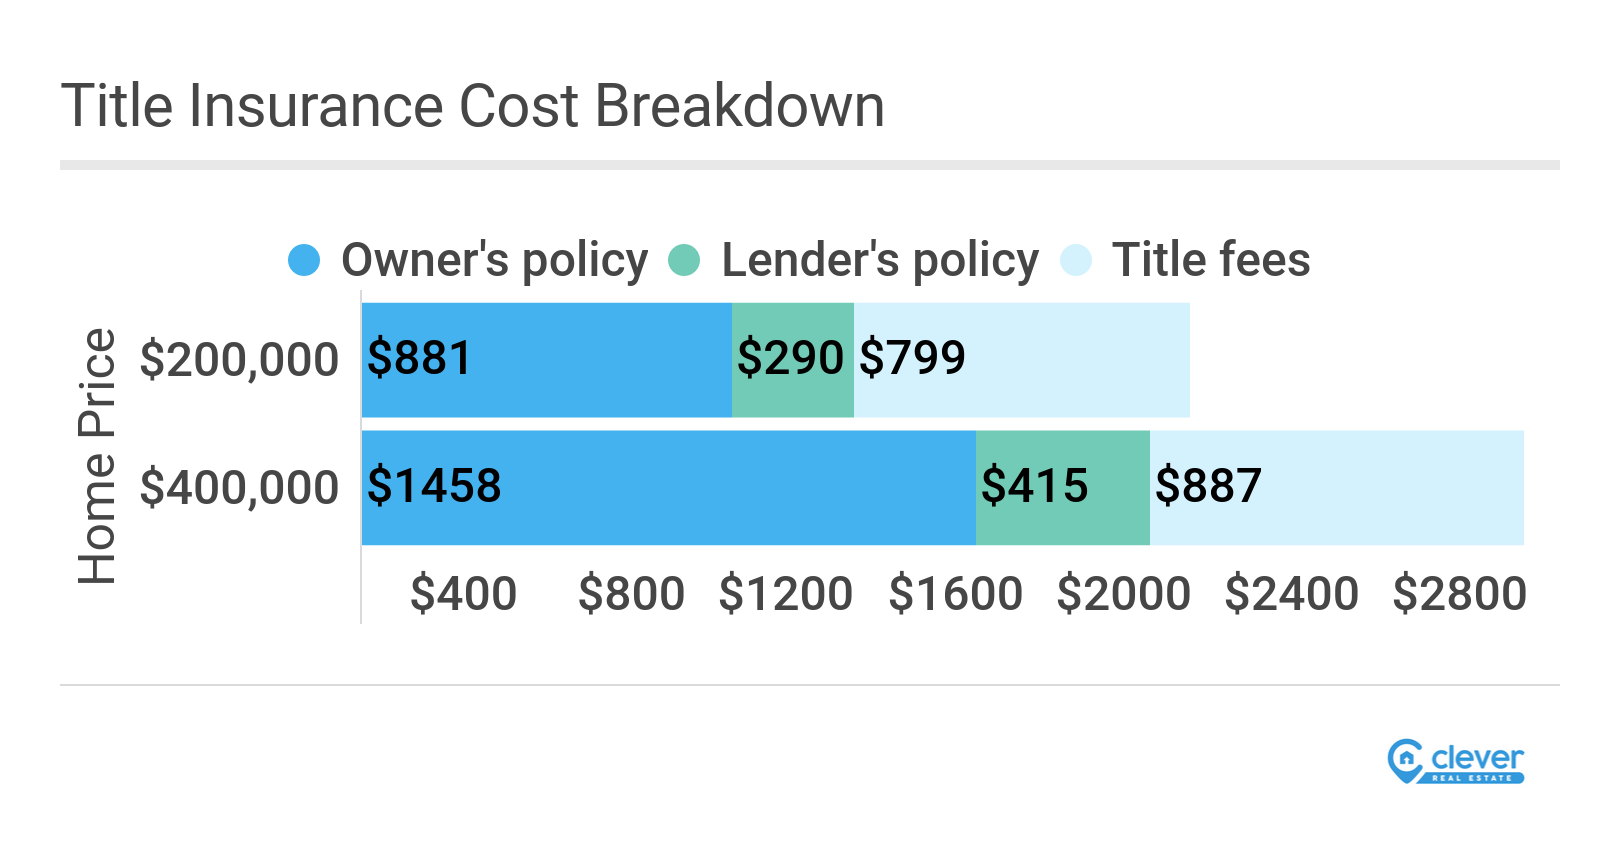 Breakdown of title insurance costs by home value